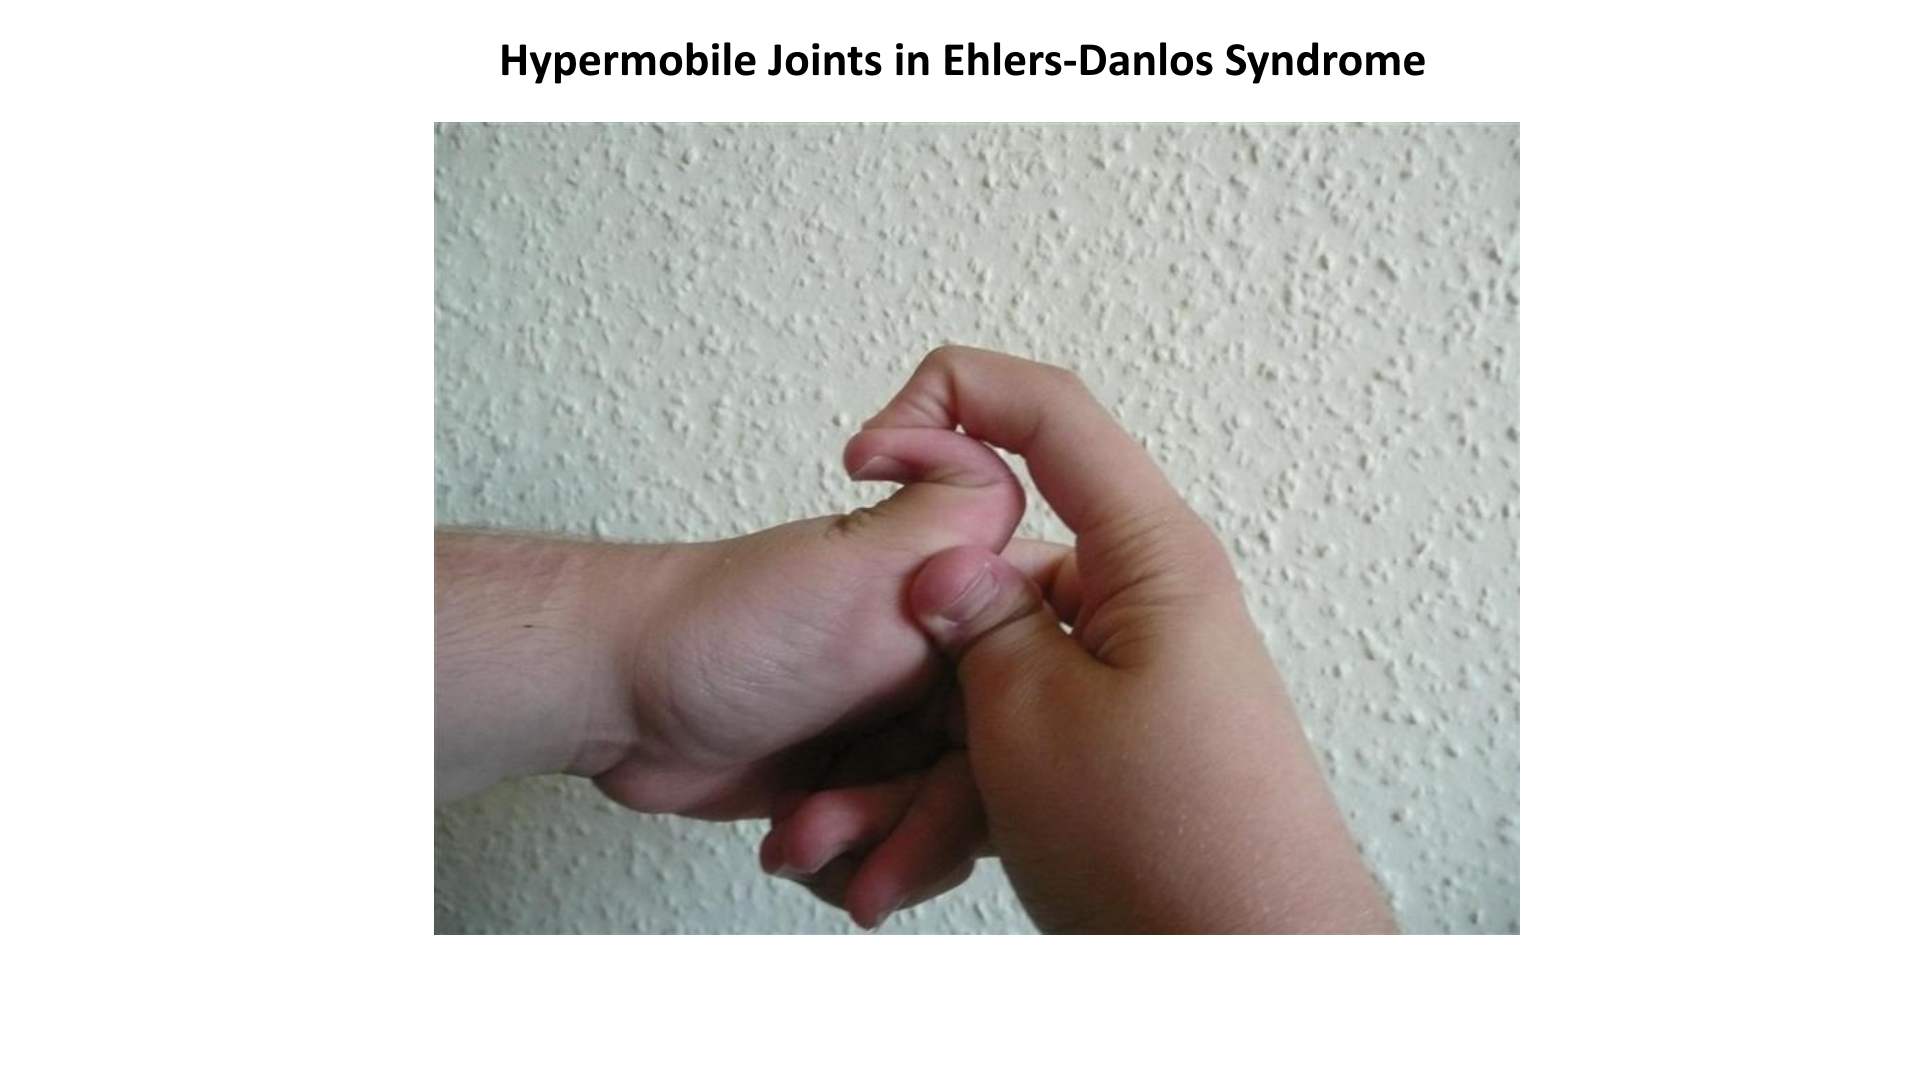 hypermobility in ehlers-danlos syndrome